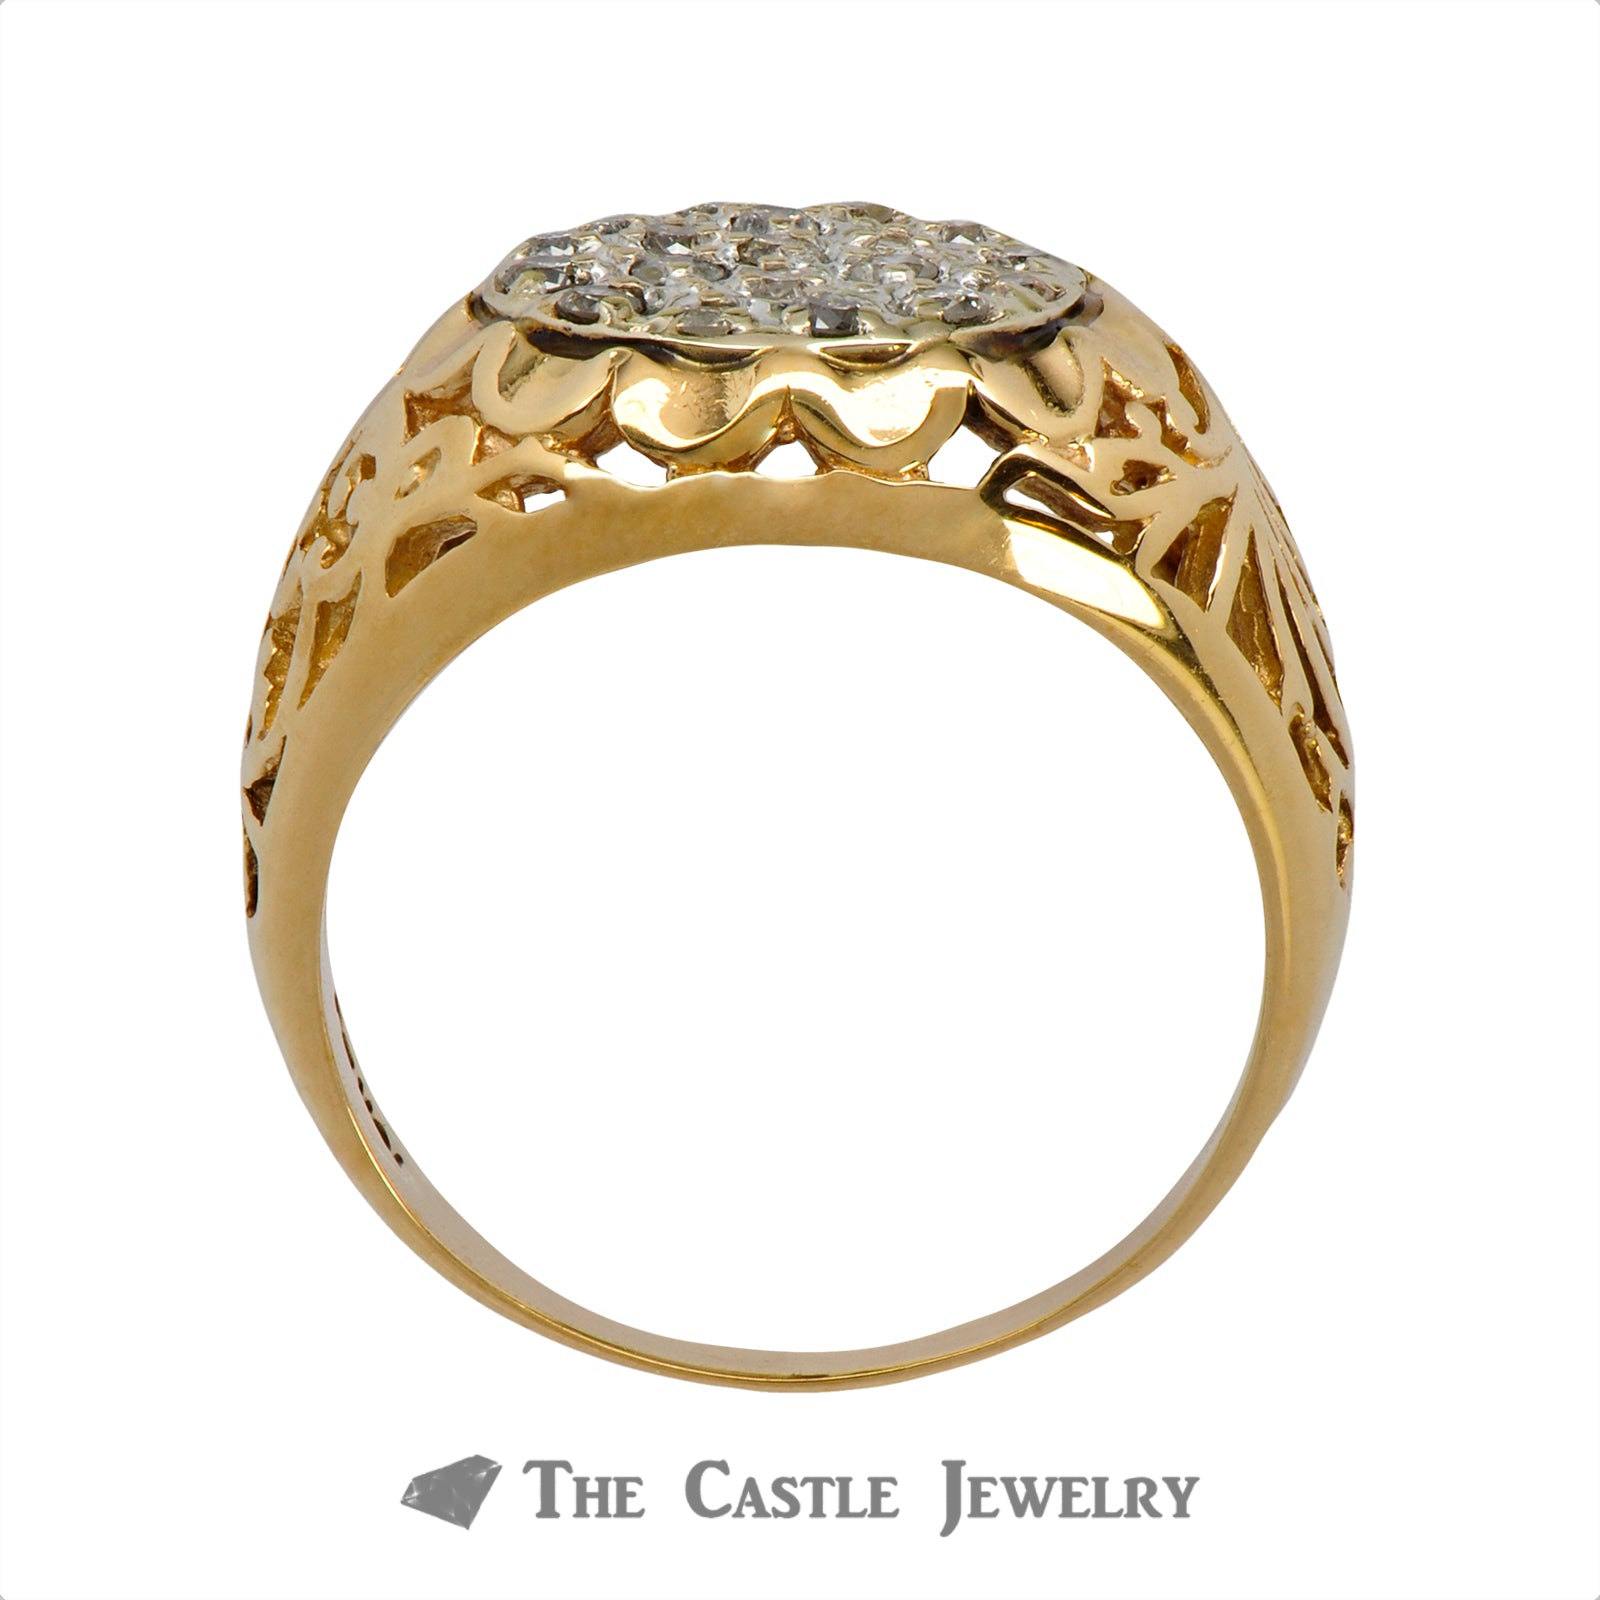 19 Diamond Kentucky Cluster Ring in 10K Yellow Gold-1